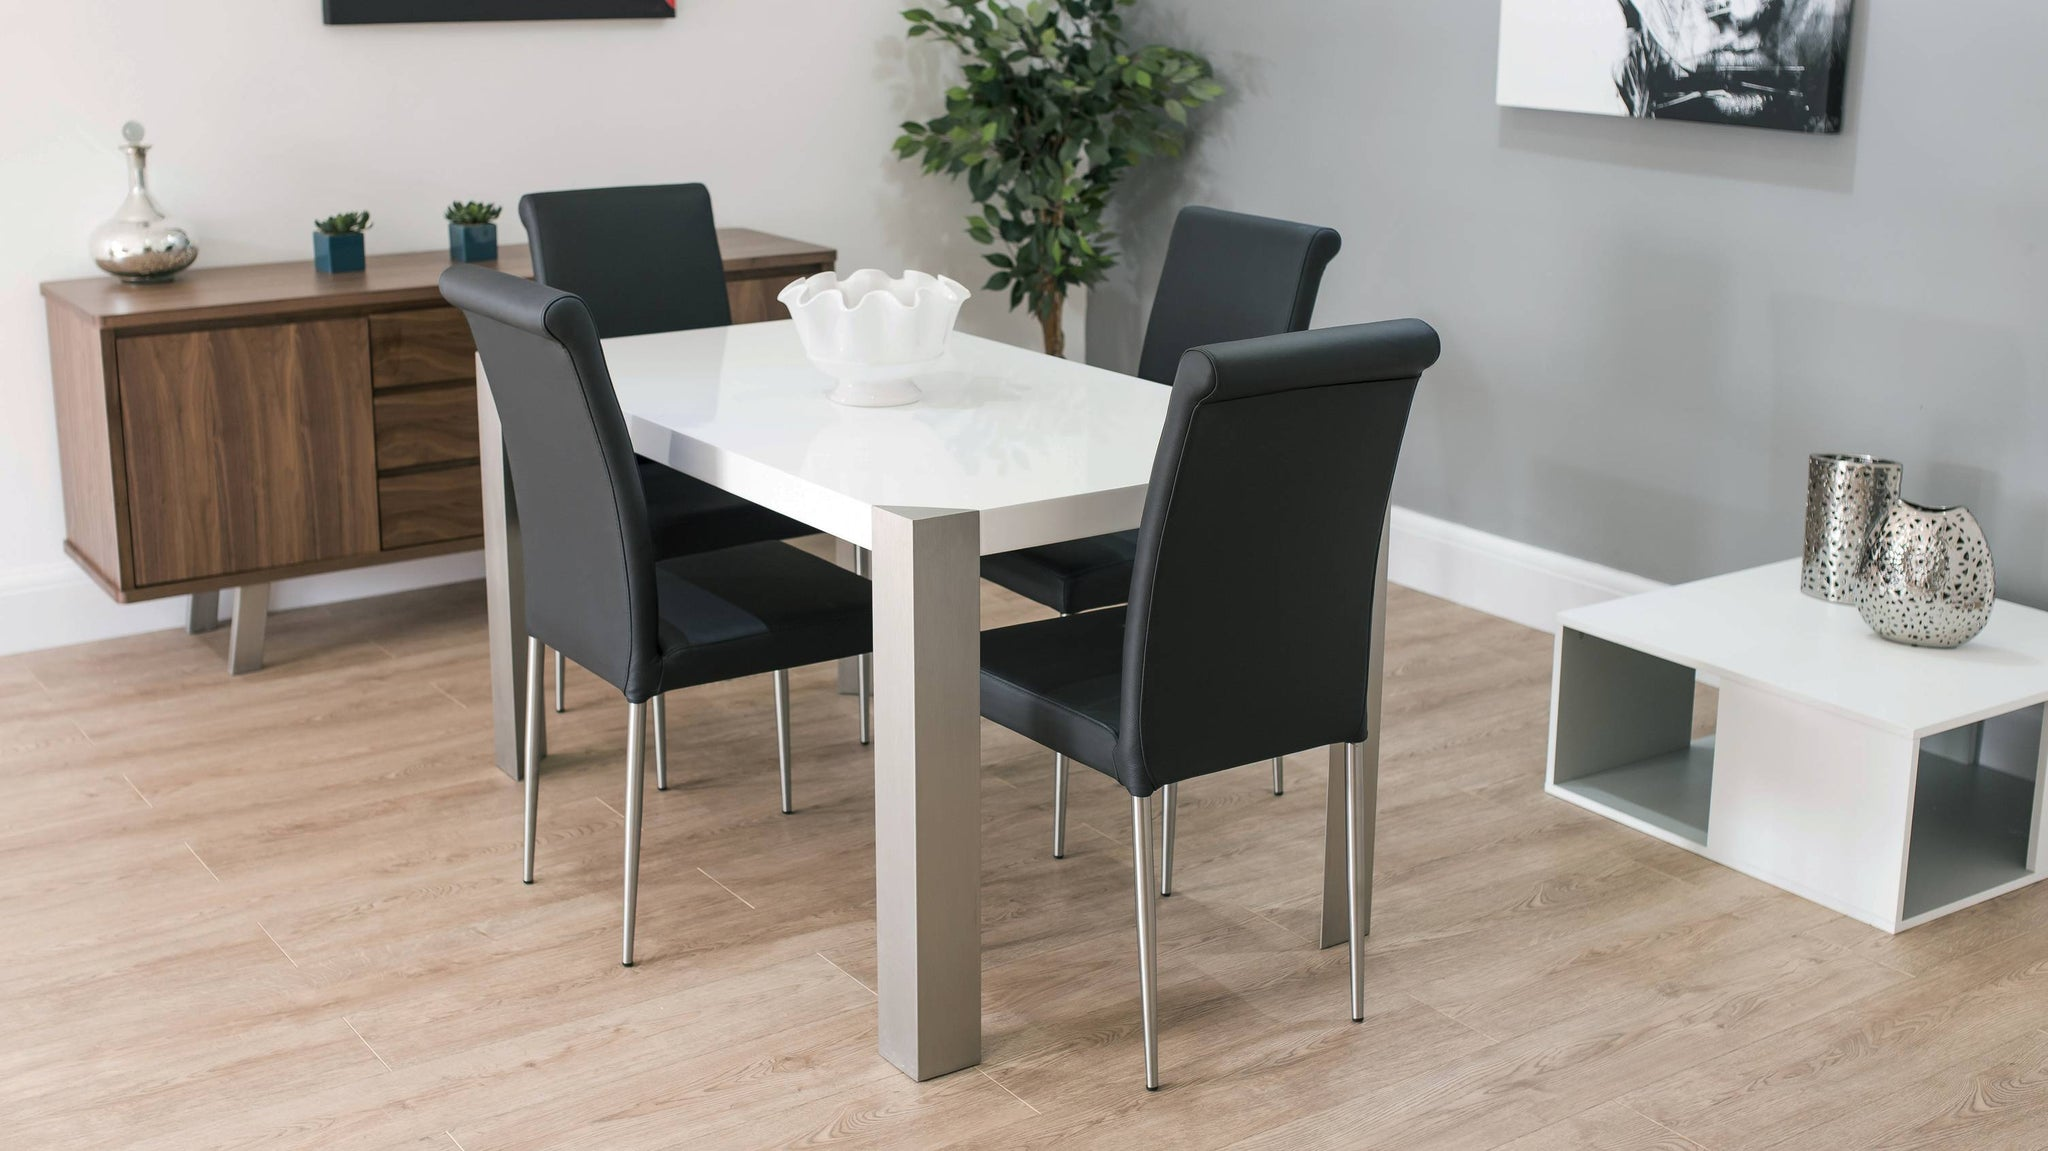 High Quality Leather Dining Chairs and White Dining Table